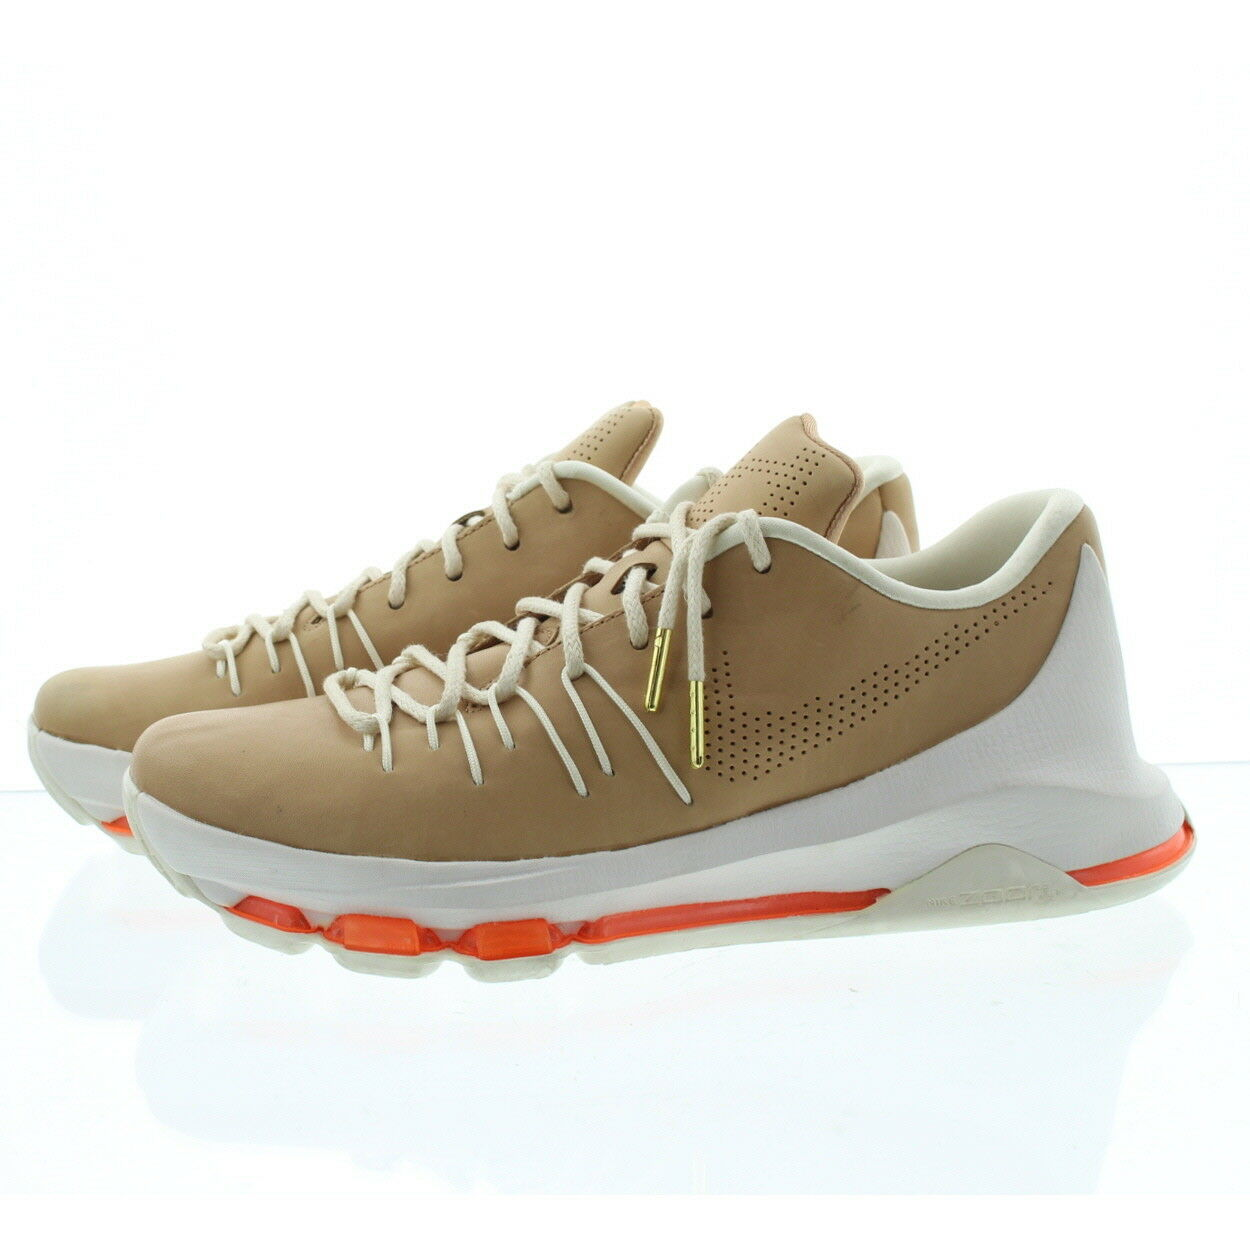 Nike 806393 Mens Kevin Durant 8 Extension Low Top Running shoes Sneakers